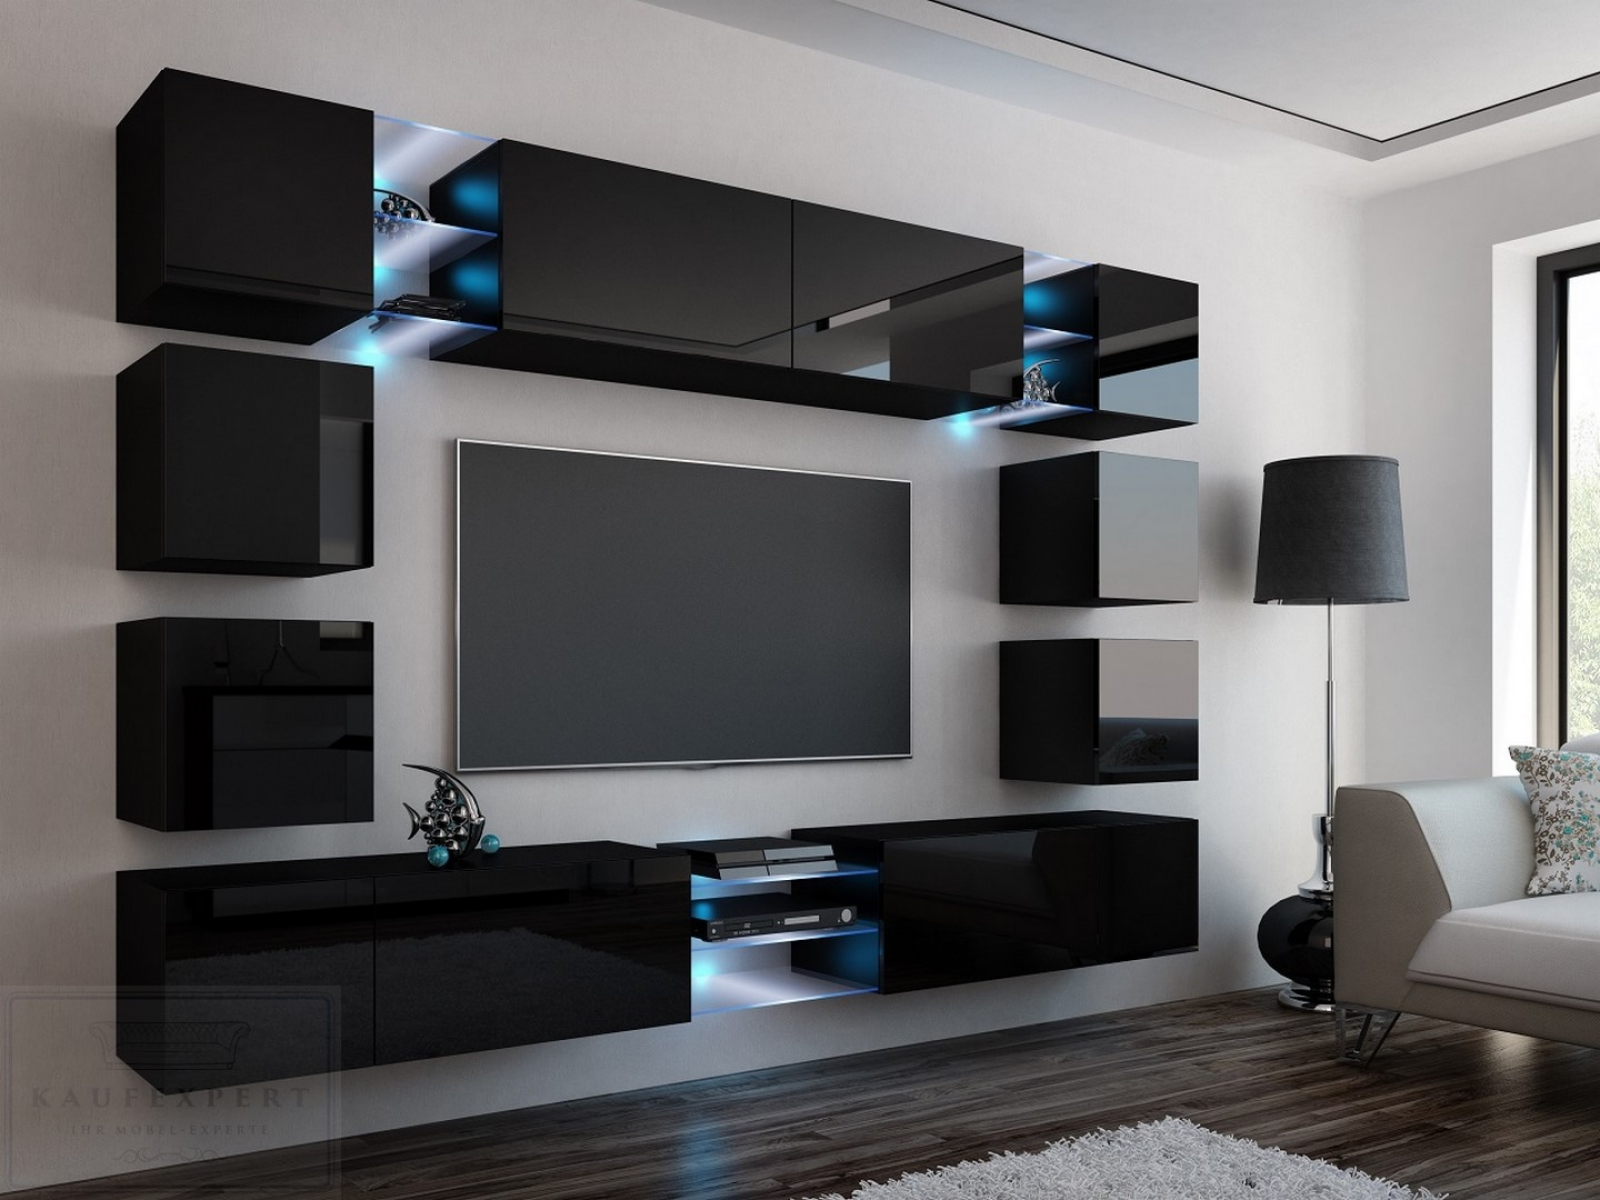 kaufexpert wohnwand edge schwarz hochglanz mediawand medienwand design modern led beleuchtung. Black Bedroom Furniture Sets. Home Design Ideas